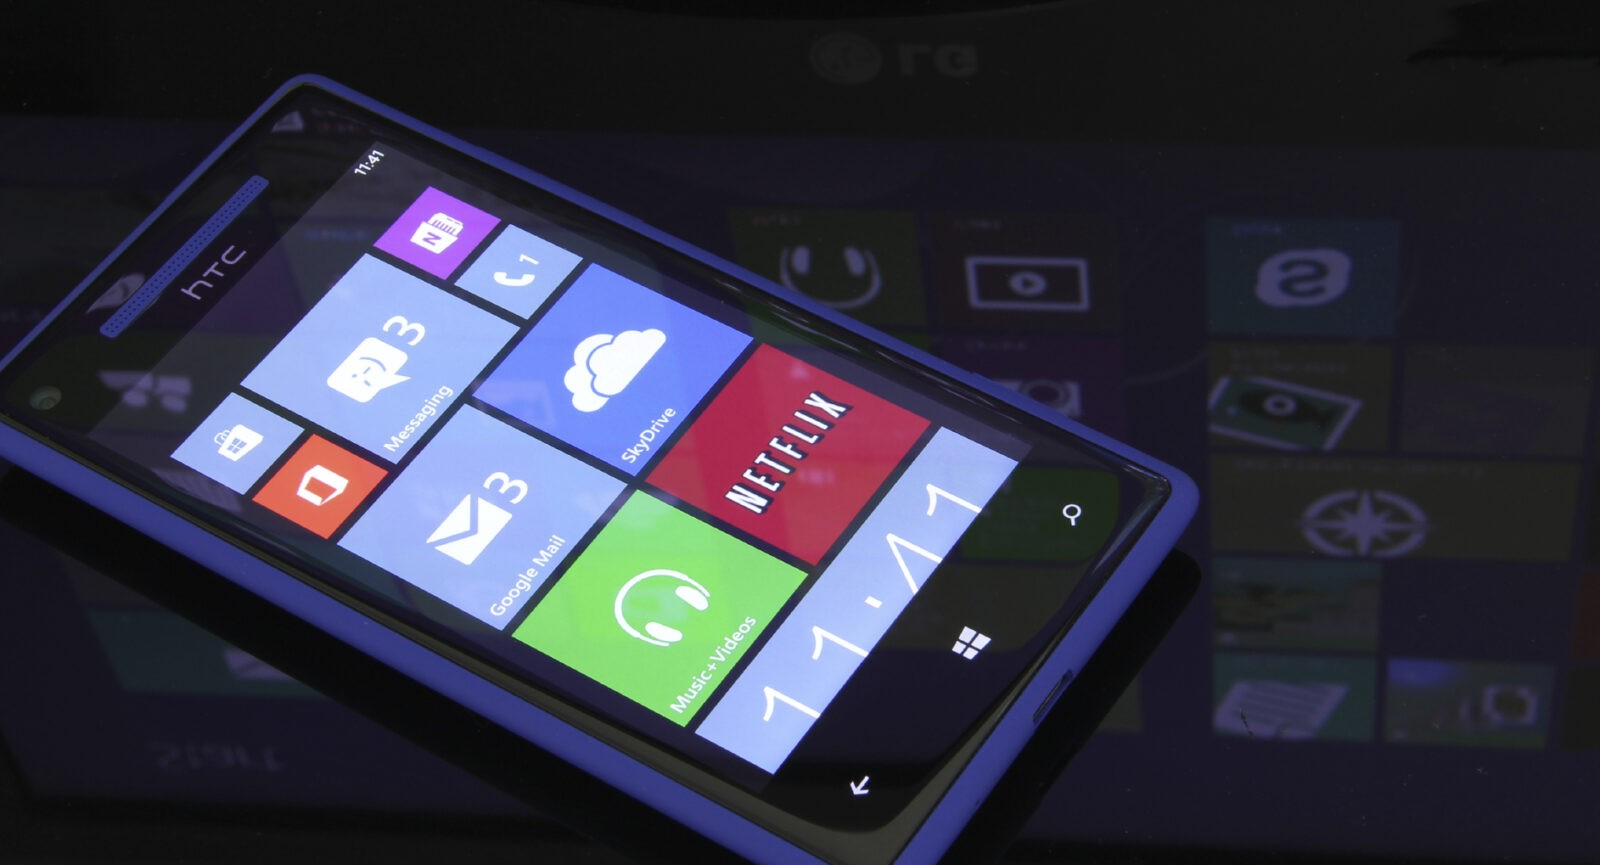 Windows phone 8 with Windows 8 in the reflection